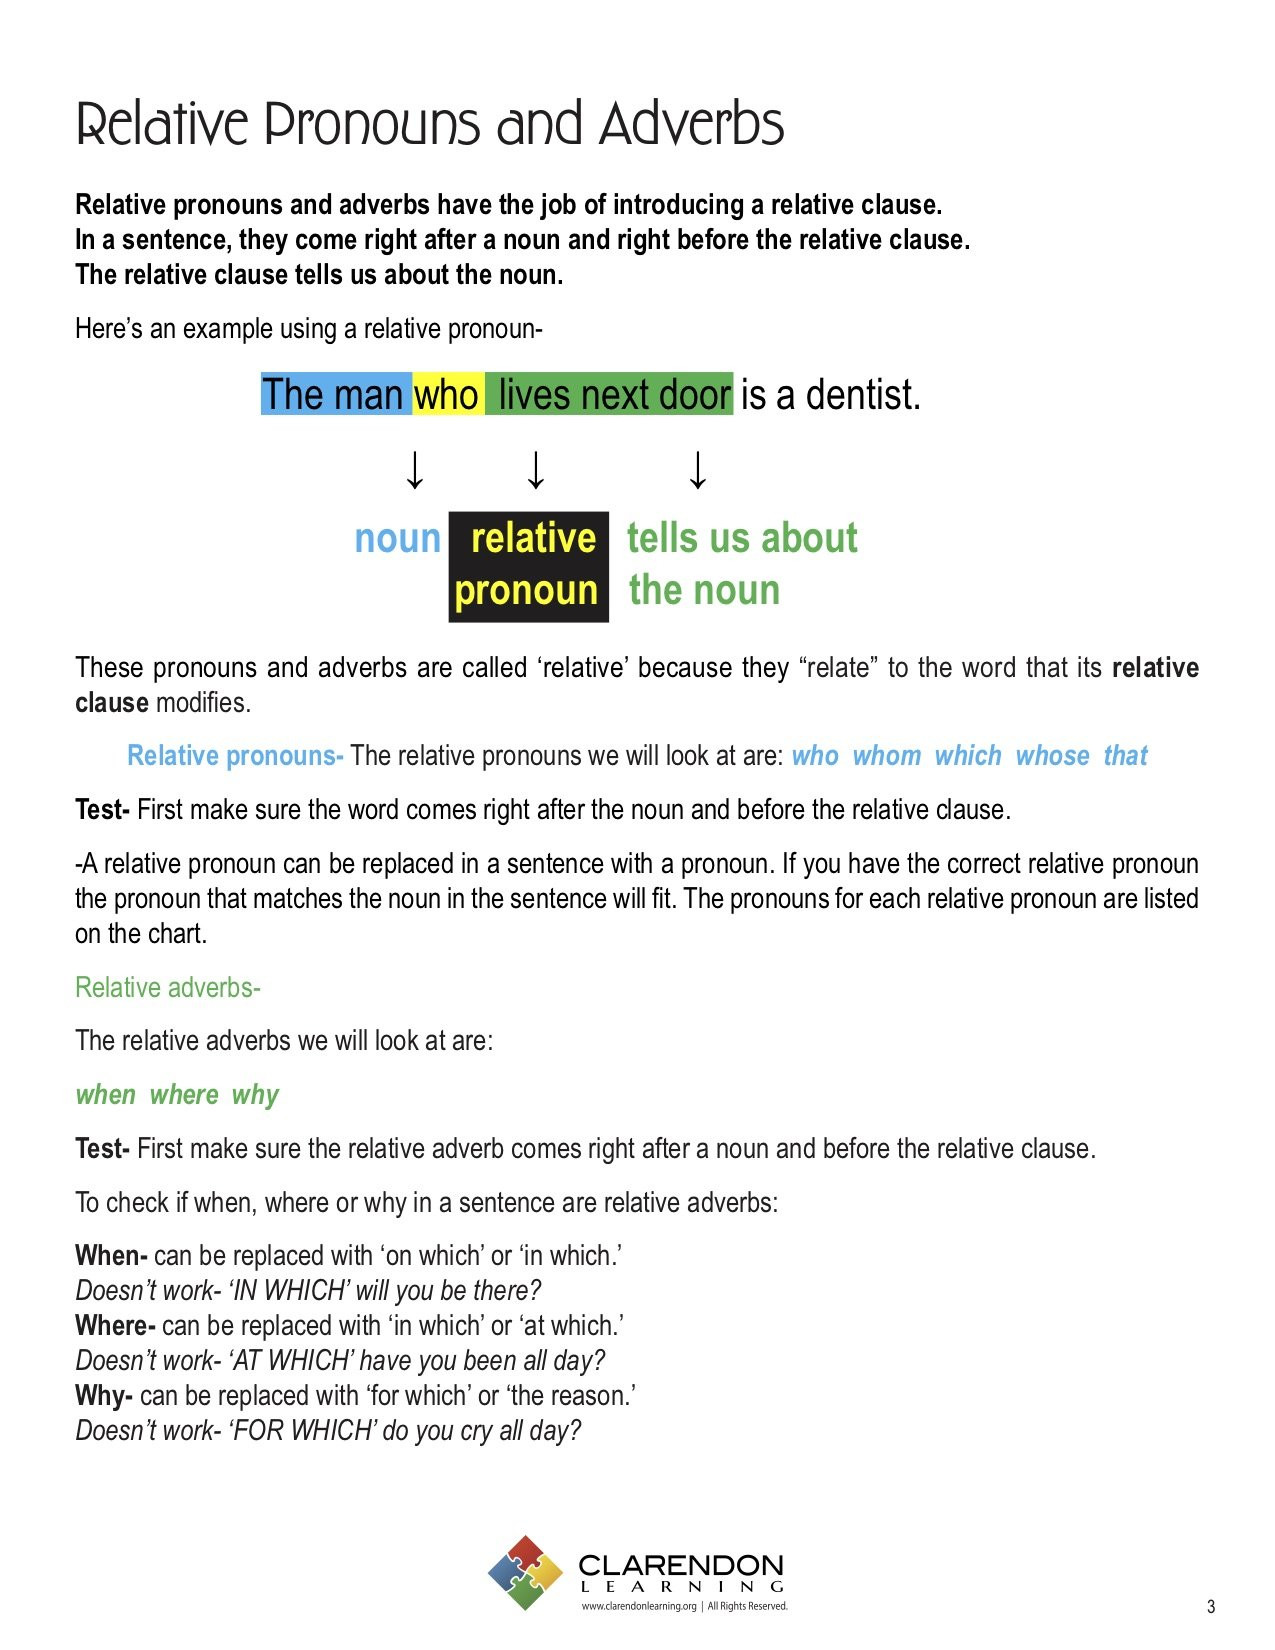 Relative Adverbs Worksheet 4th Grade Relative Pronouns and Adverbs